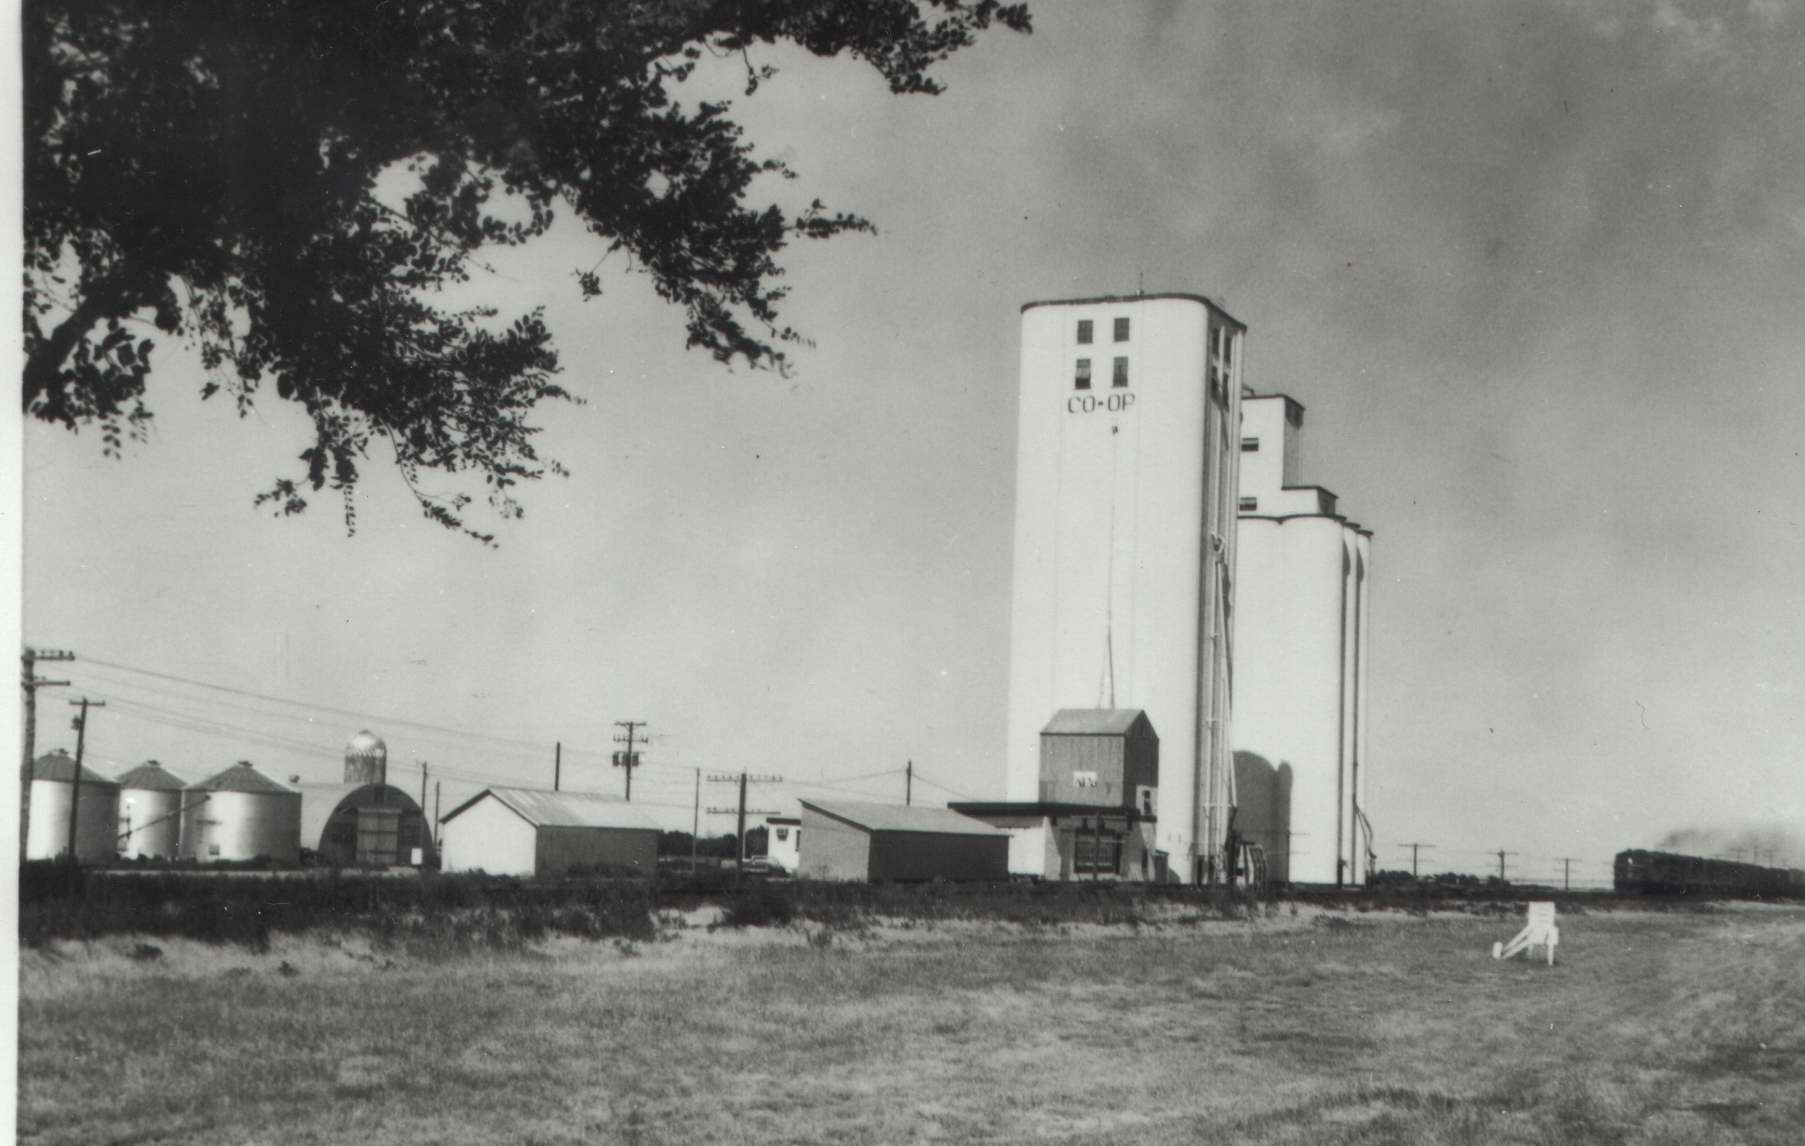 High Plains Museum | PM399FARM Co-op elevator in Kanorado KS with freight train in background.